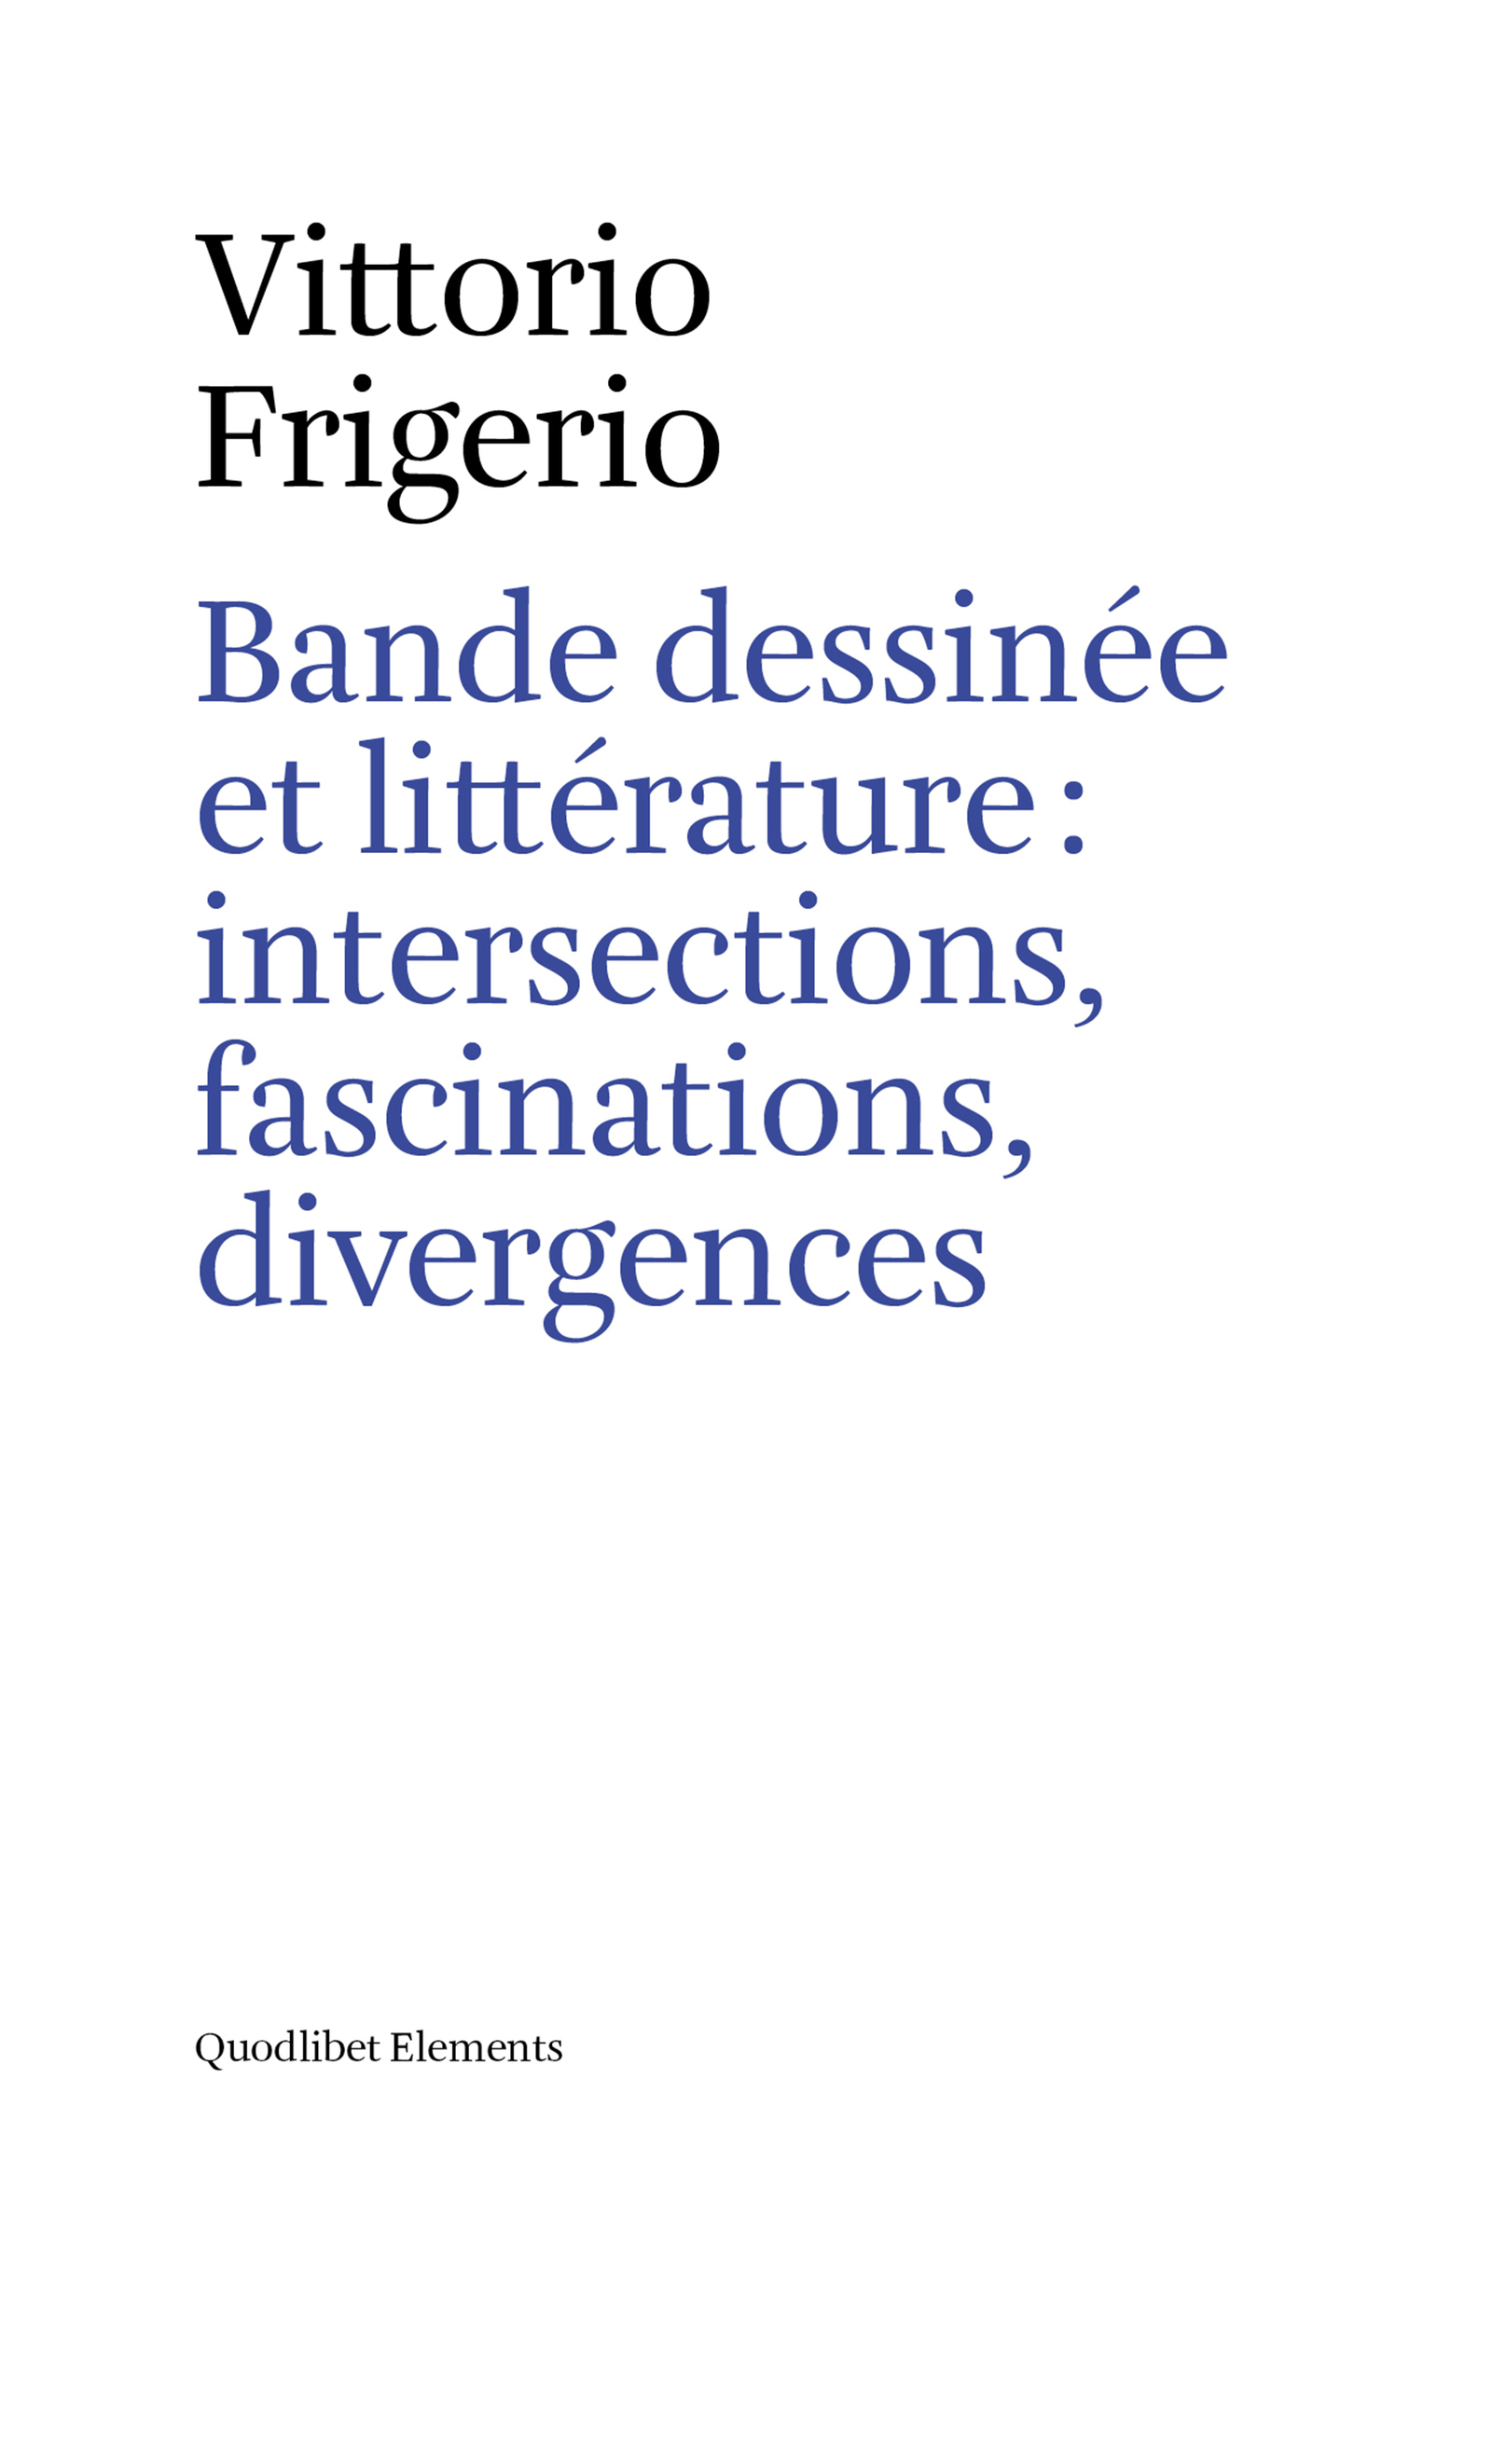 V. Frigerio, Bande dessinée et littérature : intersections, fascinations, divergences